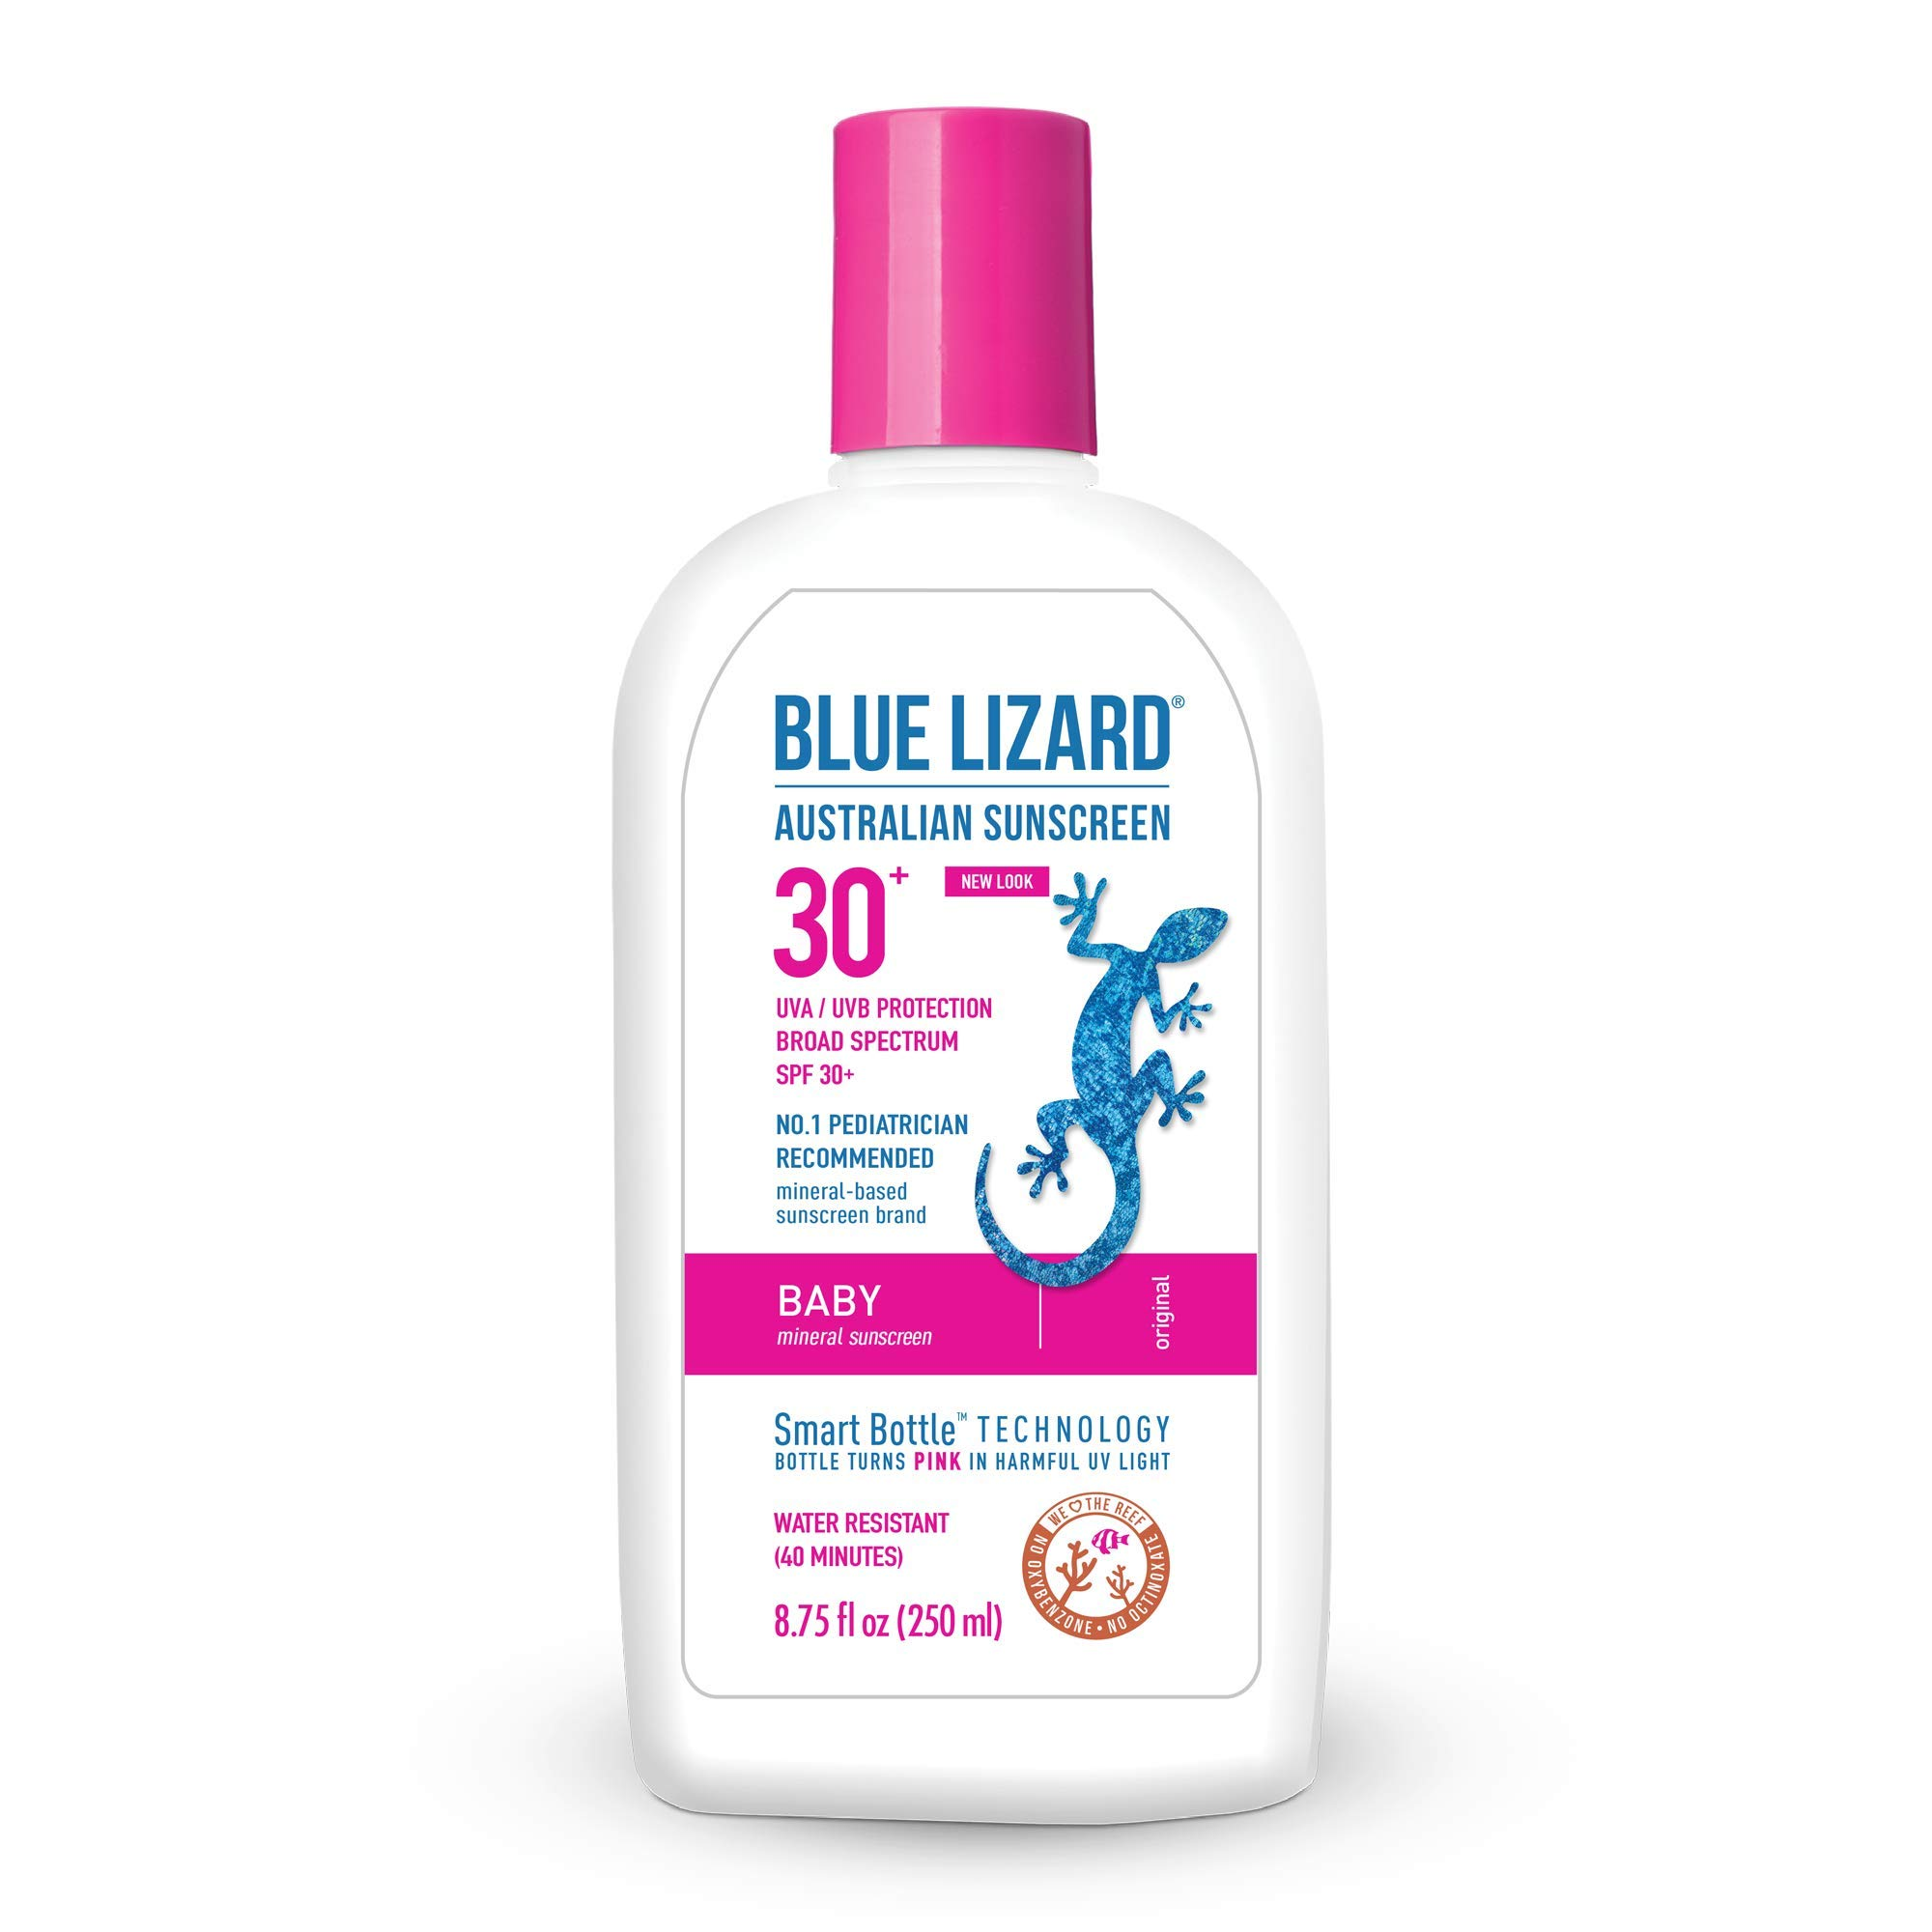 Blue Lizard Baby Mineral Sunscreen - No Chemical Actives - SPF 30+ UVA/UVB Protection, 8.75 oz by BLUE LIZARD